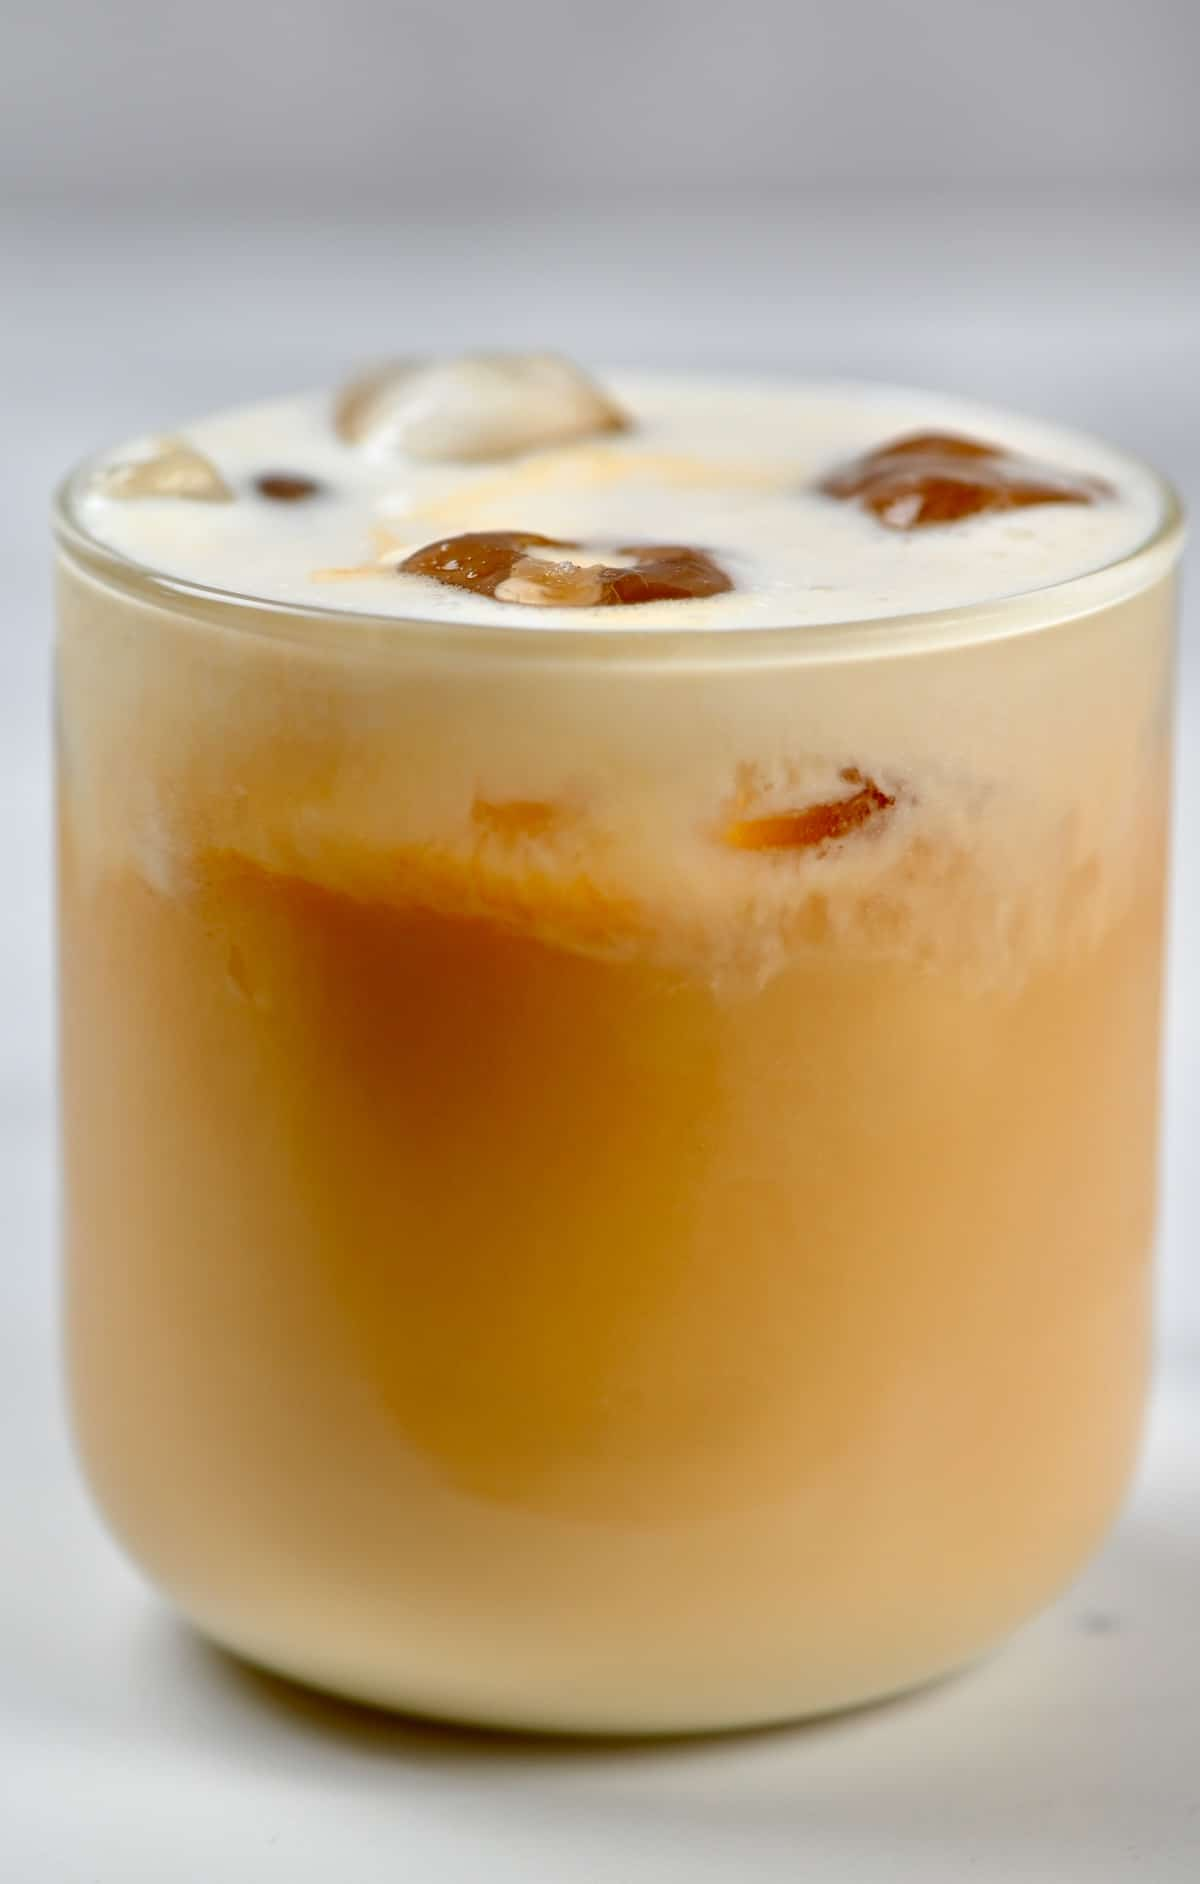 A glass with iced latte